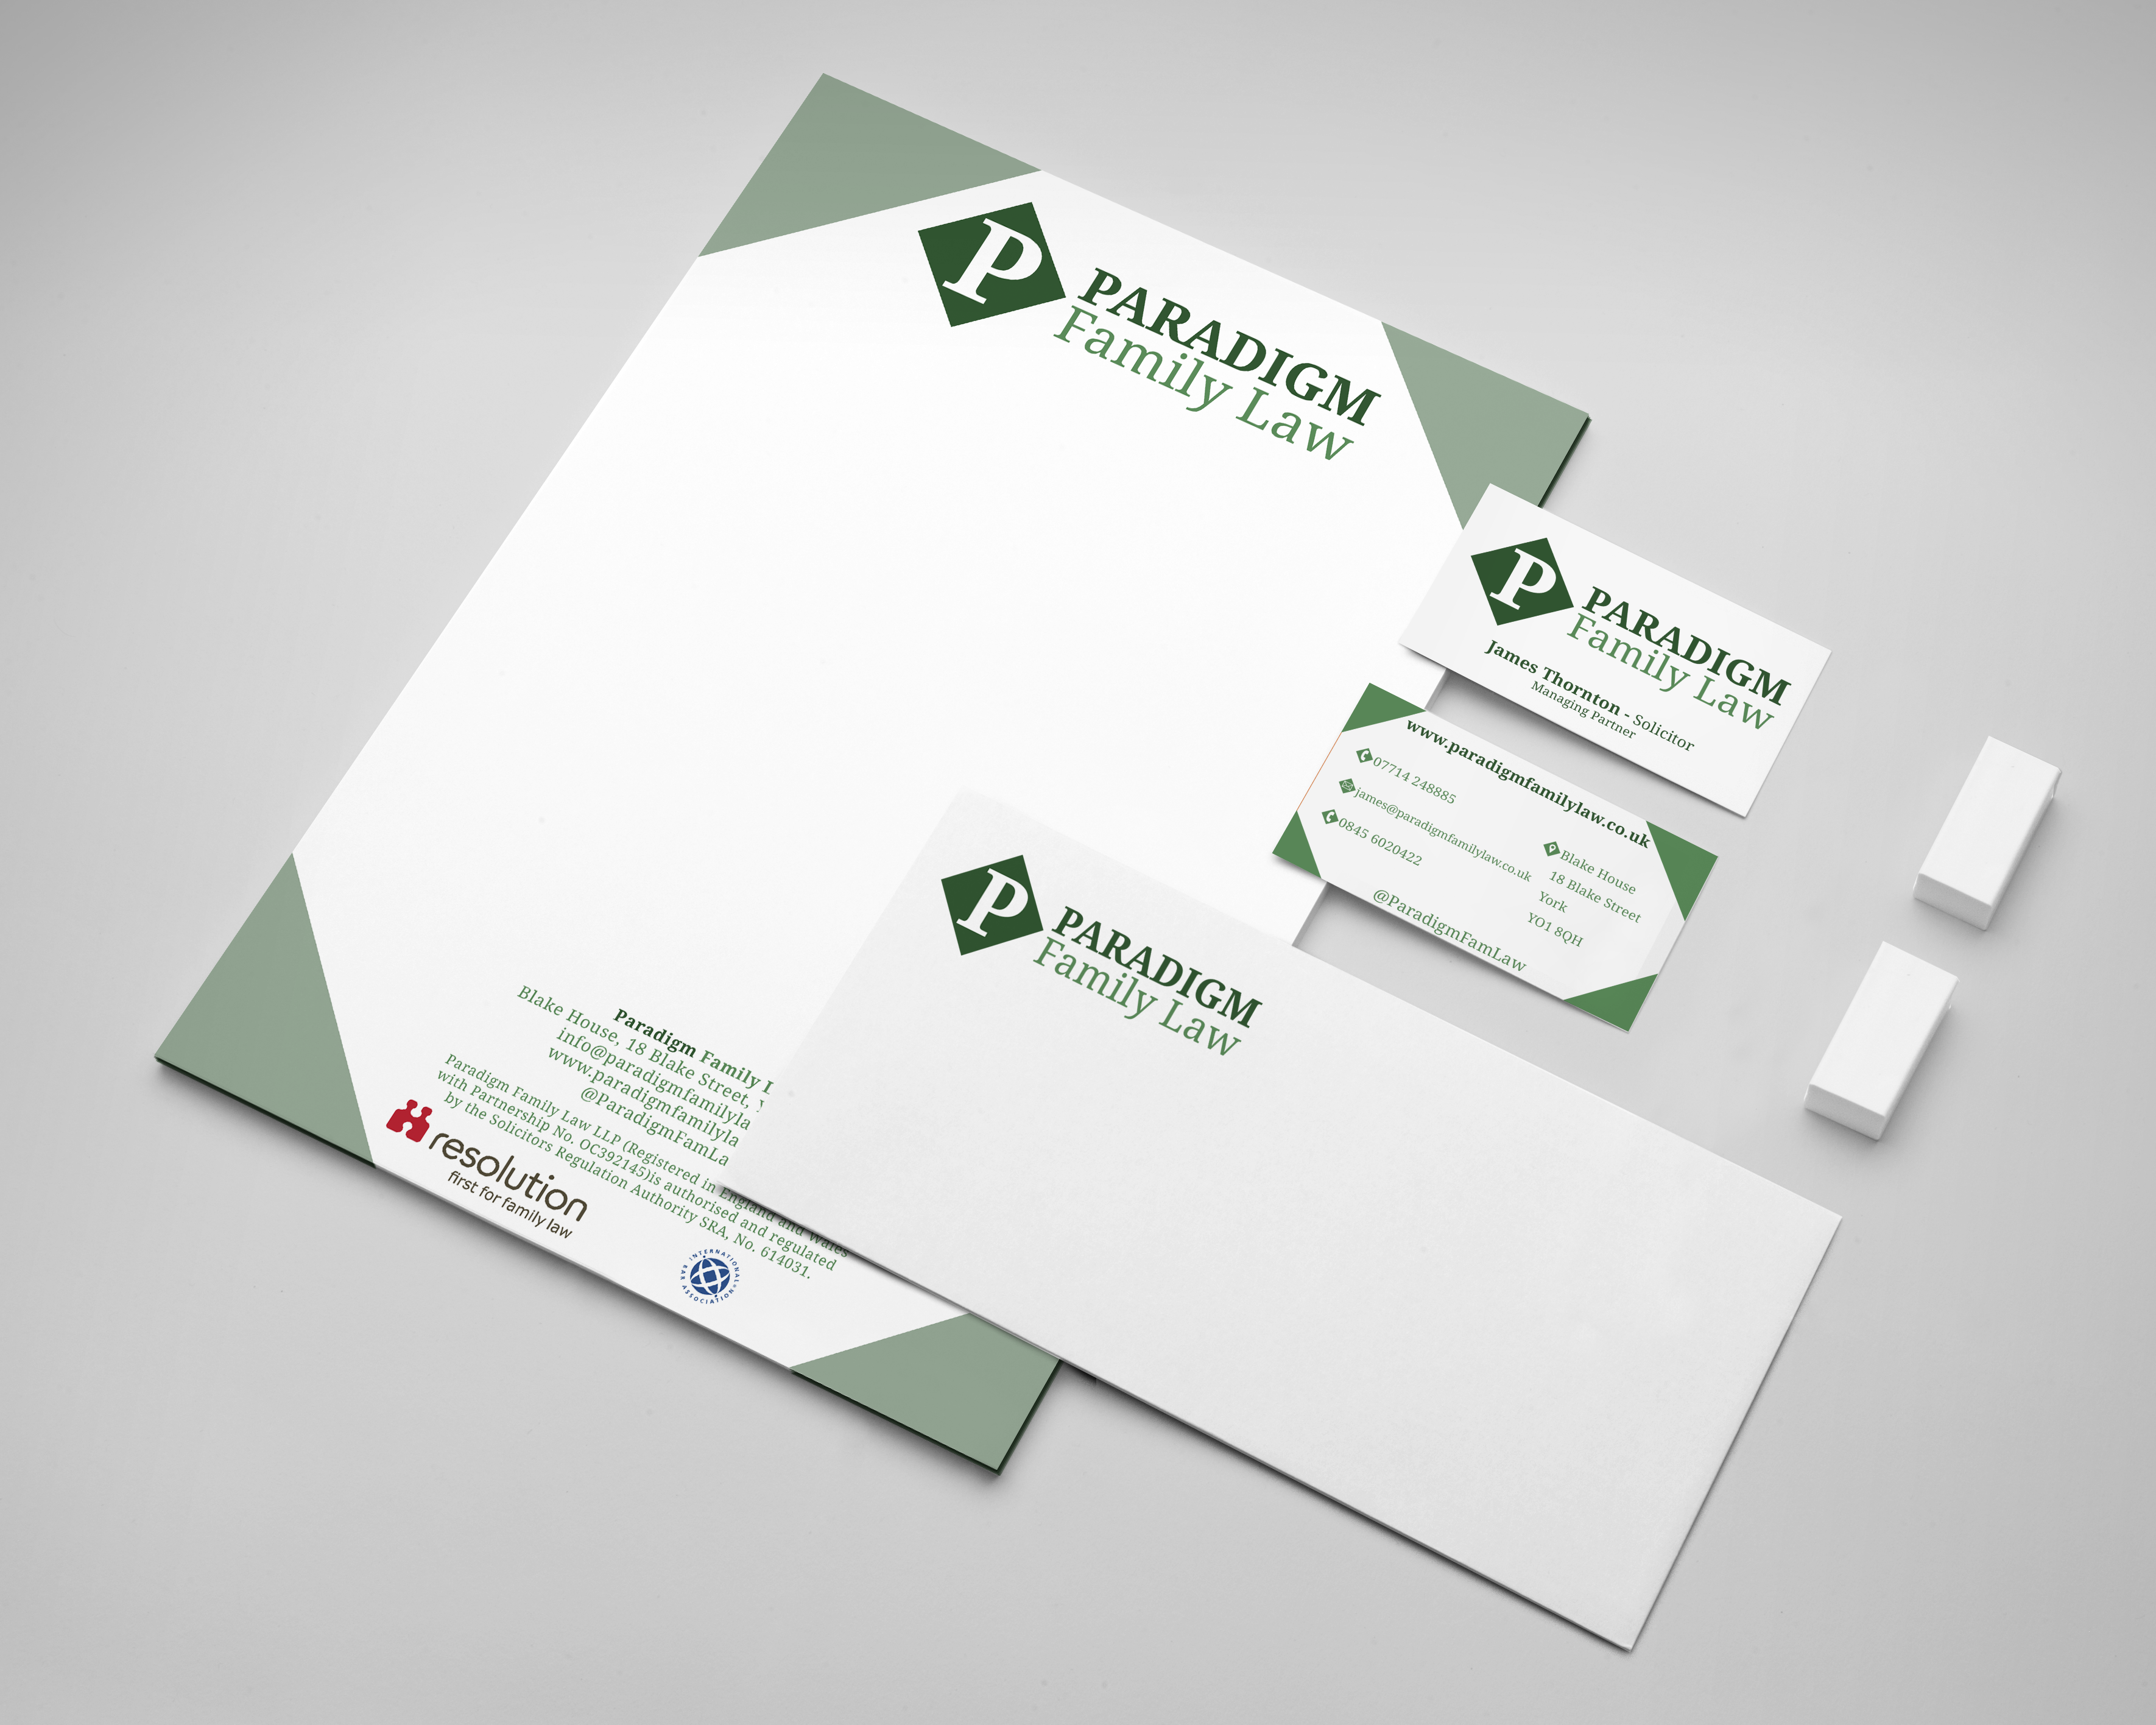 Affordable print design print assistant doncaster south we are a print and design company based in doncaster south yorkshire we have worked for many clients local nationwide and worldwide on various print and reheart Choice Image